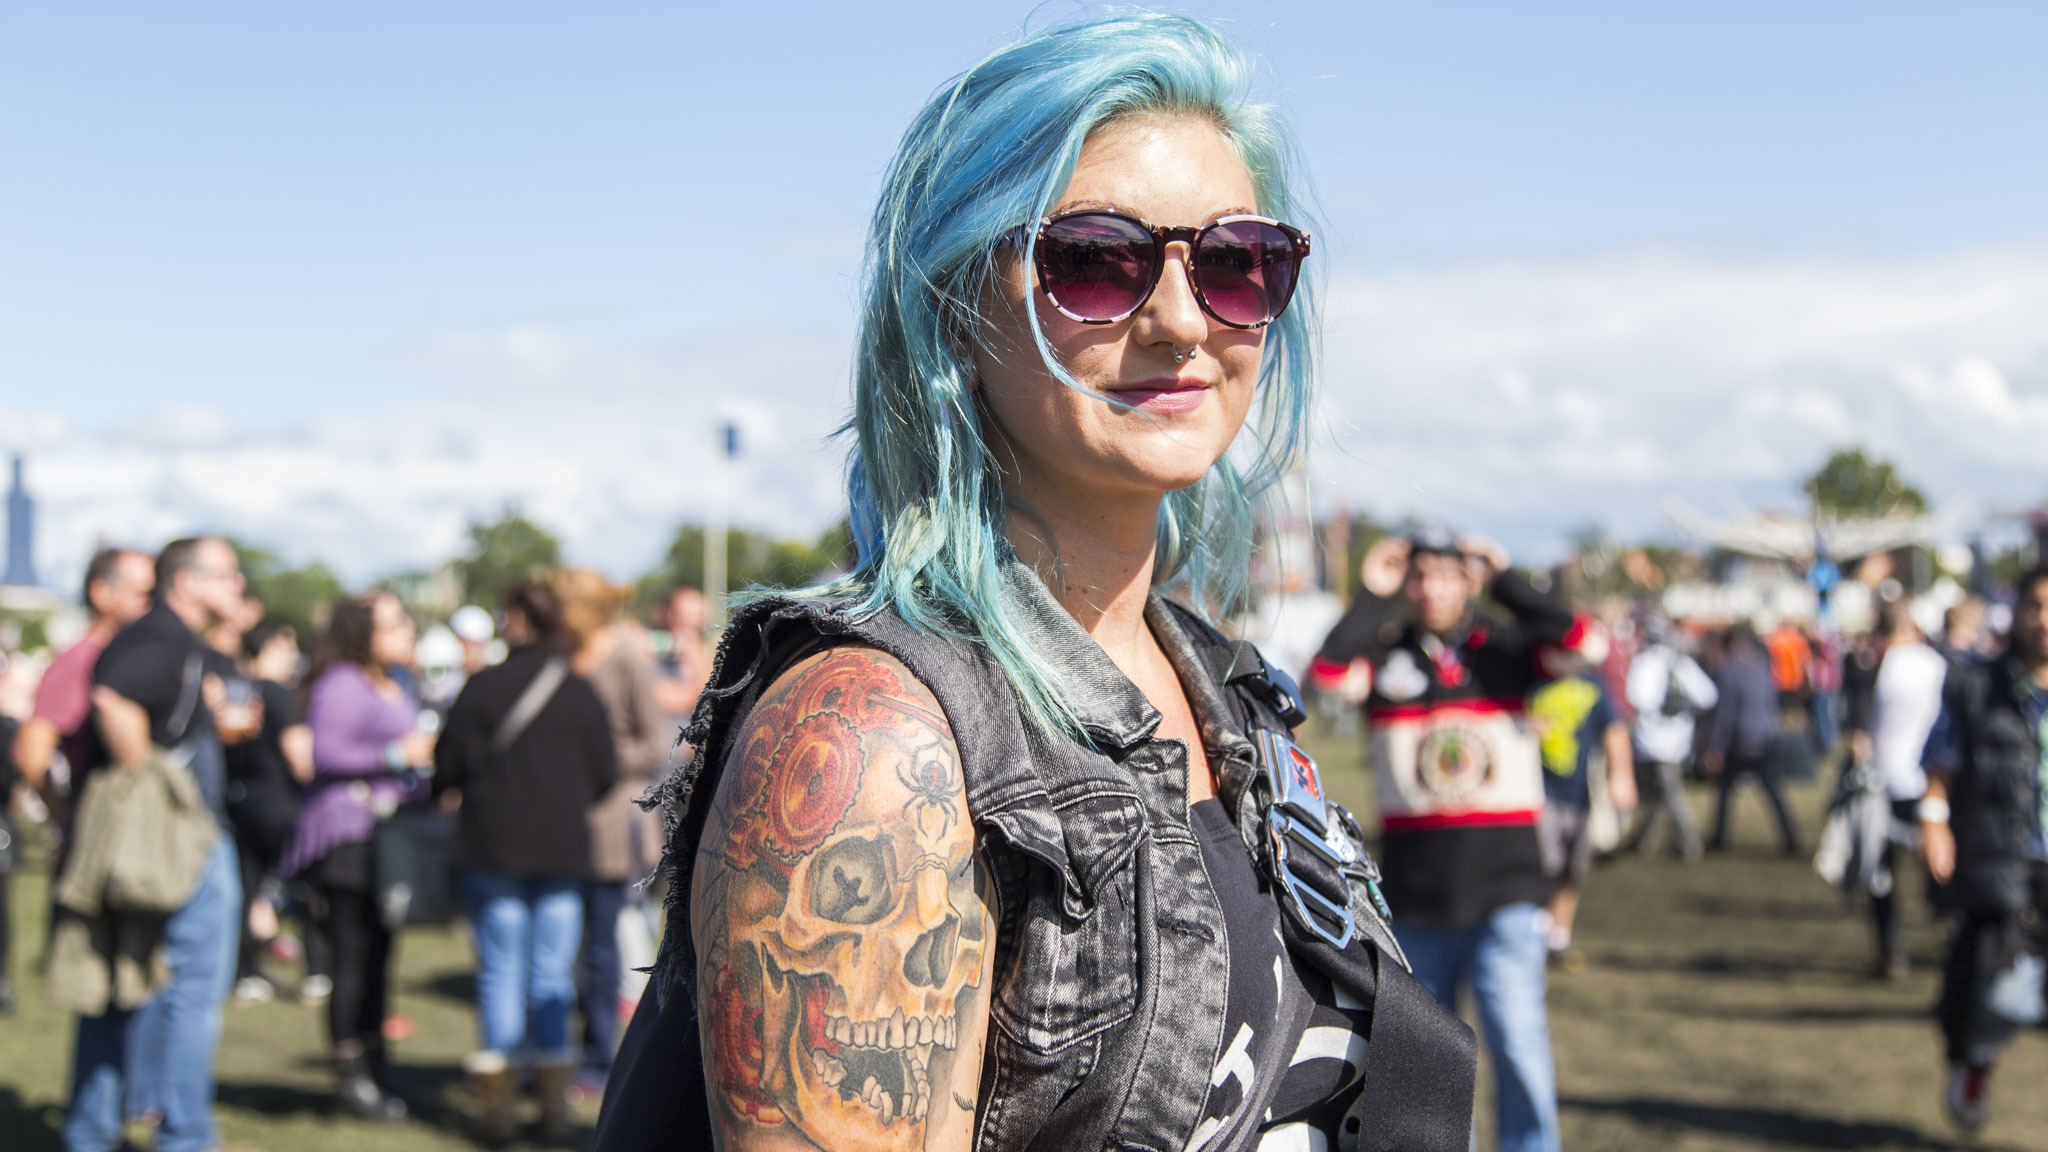 The best festival style at Riot Fest 2015